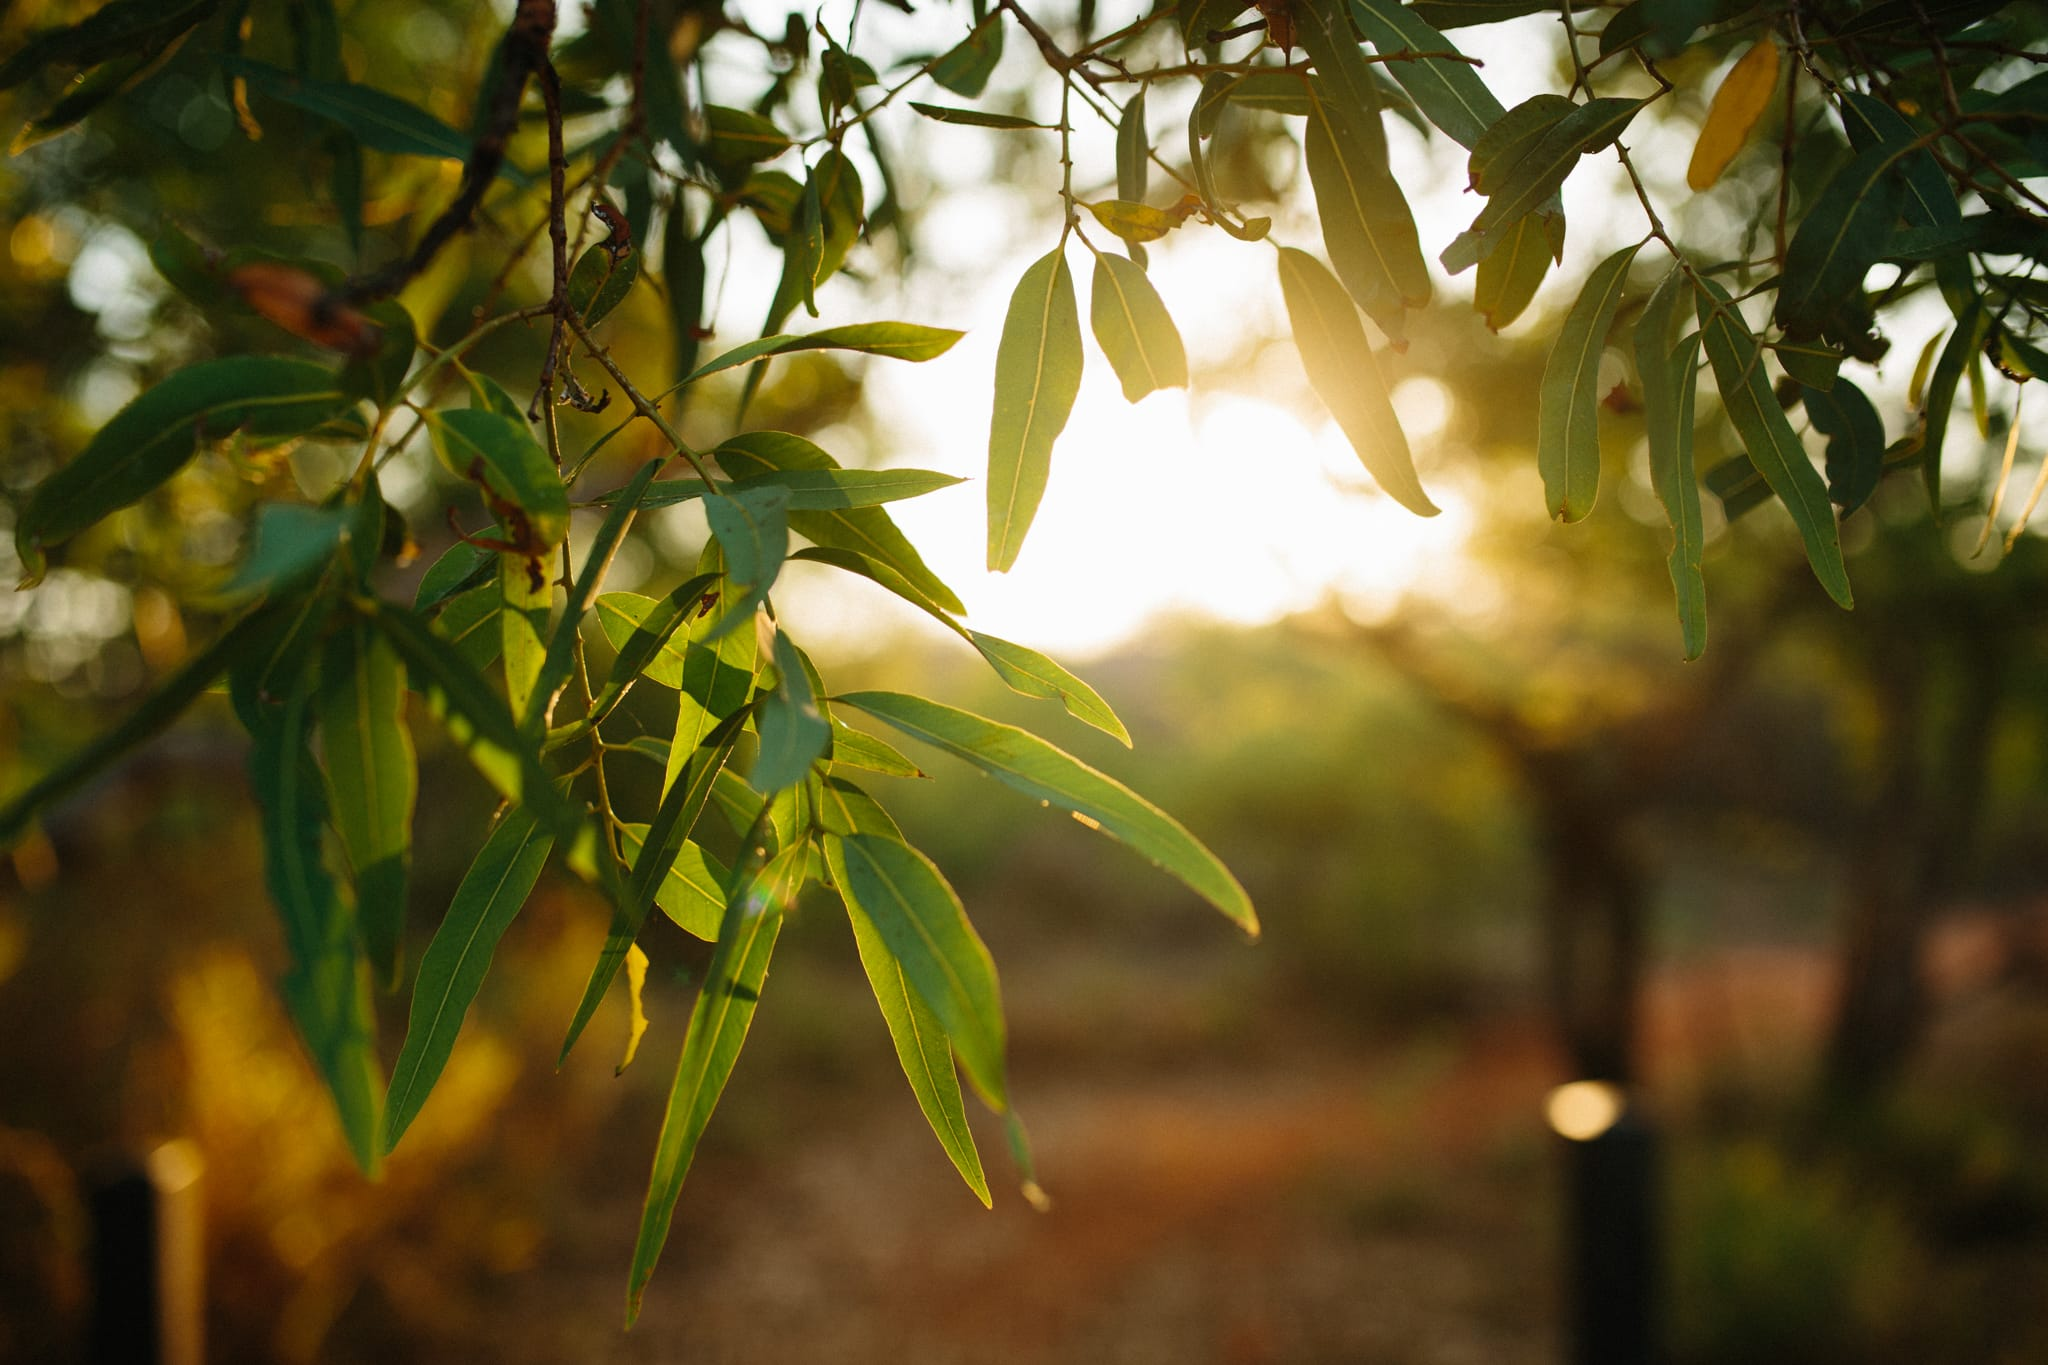 the sunlight is shining through the green leaves of a tree